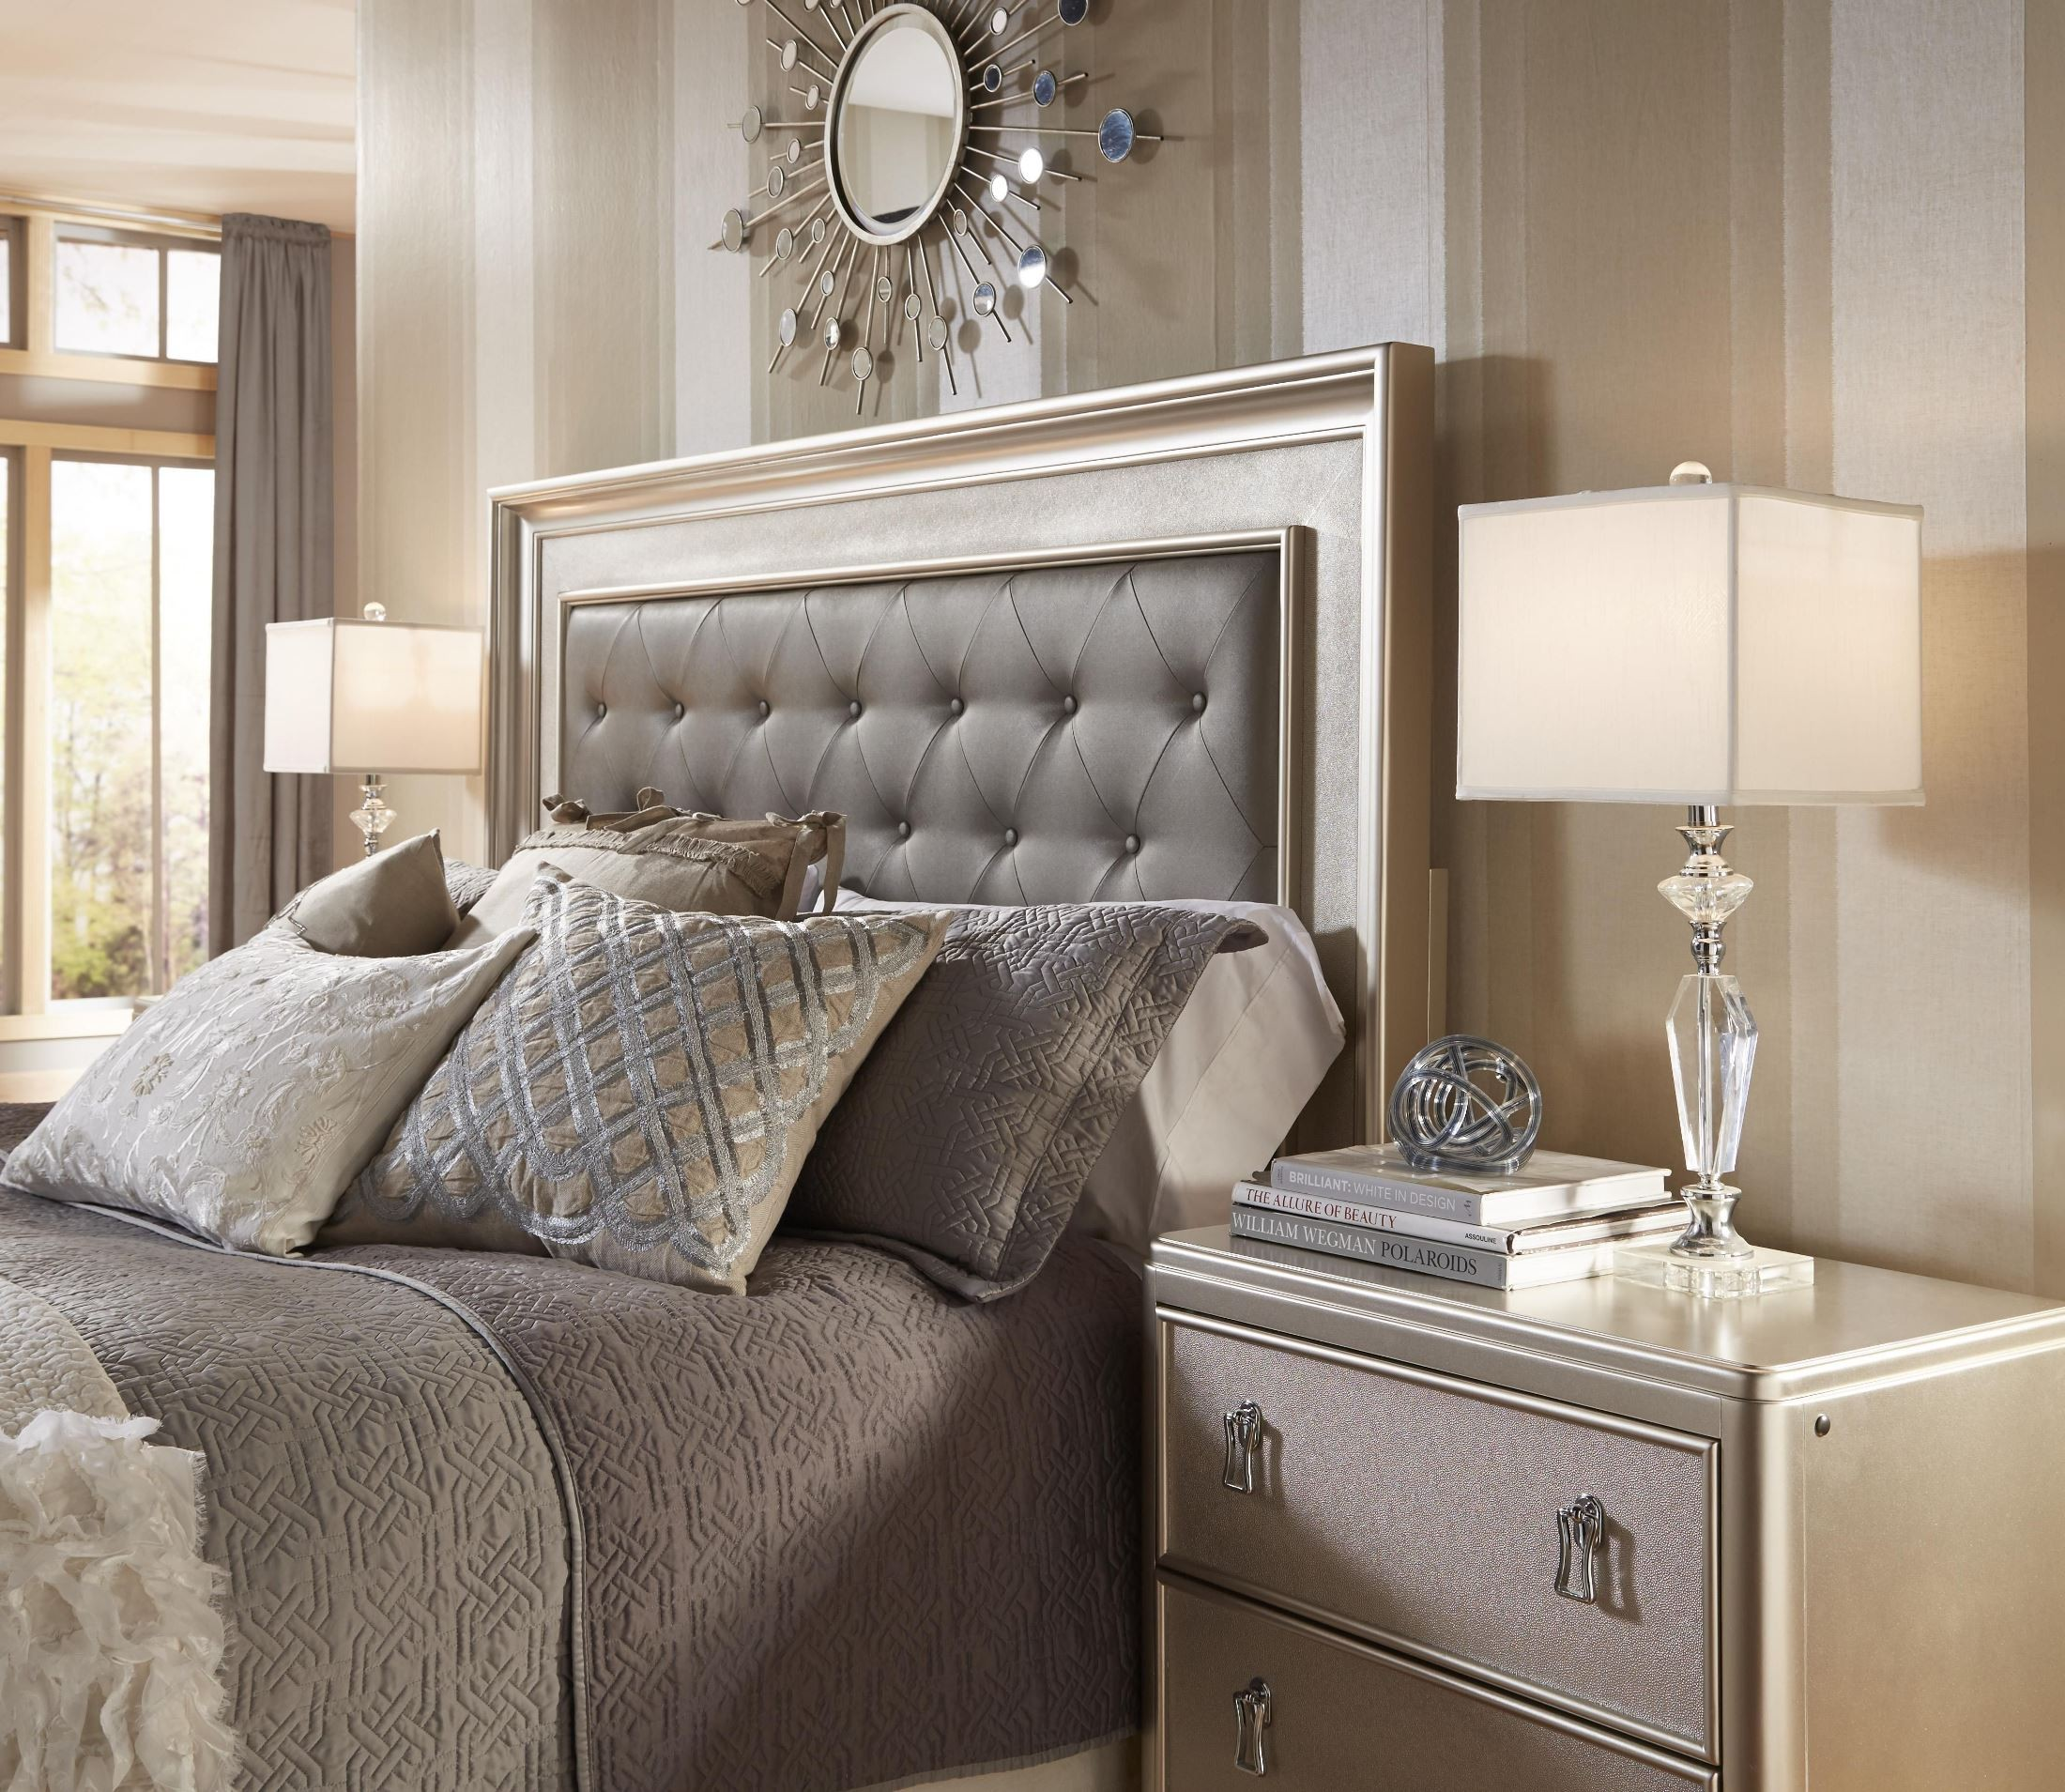 Diva panel bedroom set from samuel lawrence 8808 255 257 for Bedroom ideas queen bed